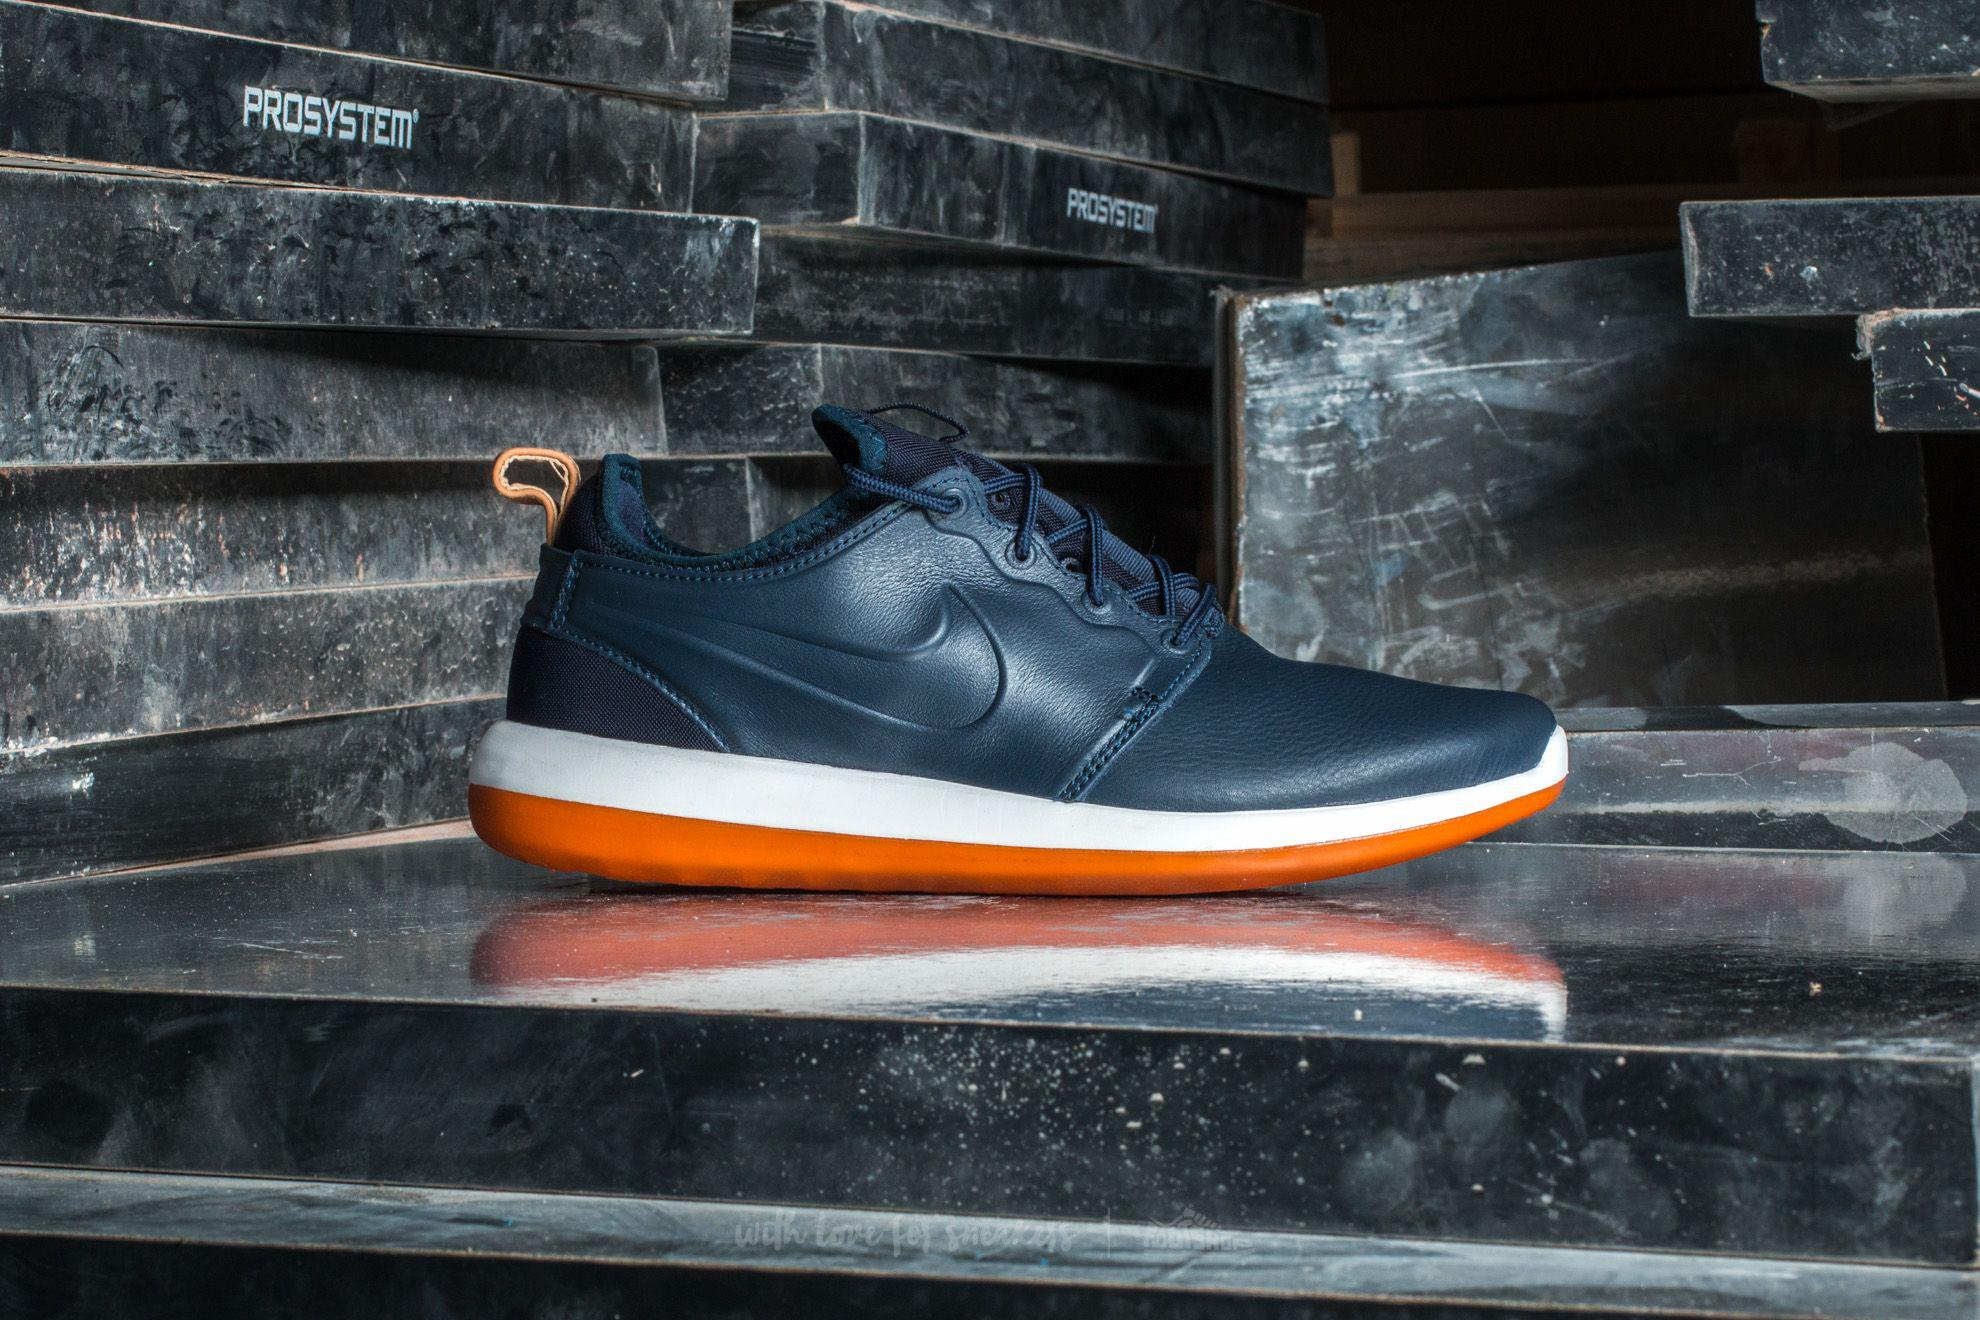 997d86ad2966 Lyst - Nike Roshe Two Leather Premium Obsidian  Obsidian-white in ...